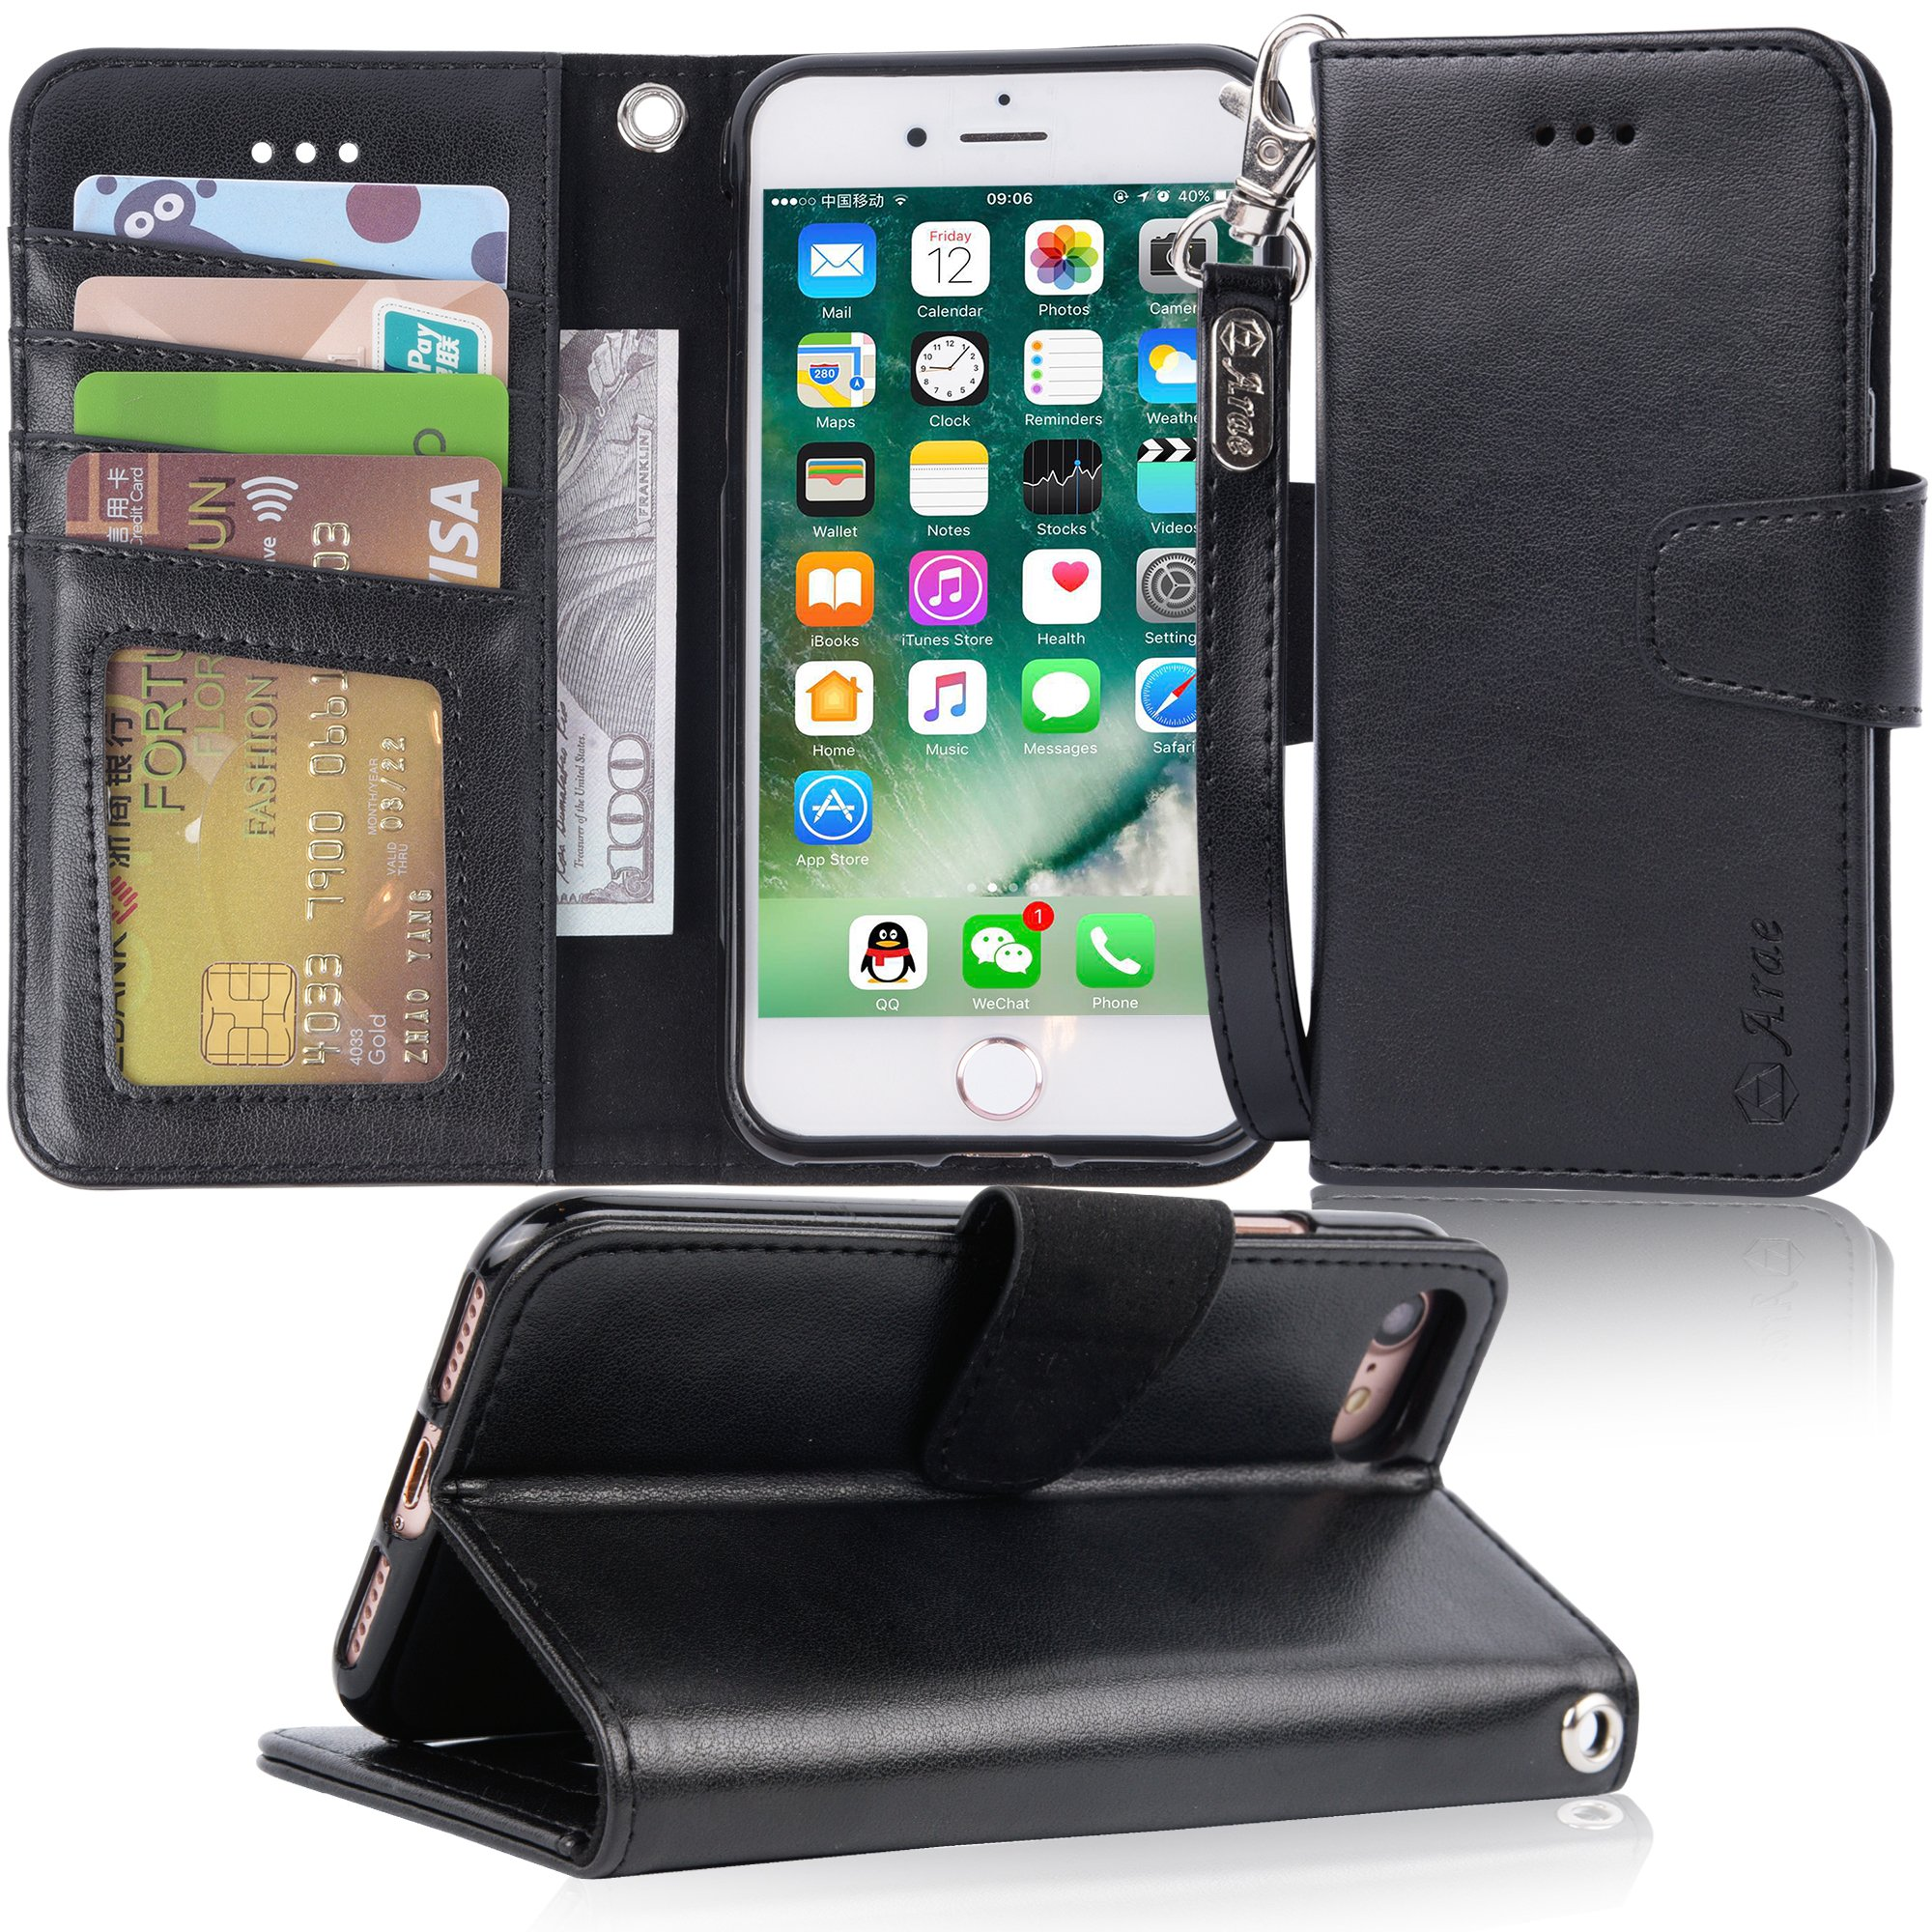 Arae Case for iPhone 7 / iPhone 8, Premium PU Leather Wallet Case with Kickstand and Flip Cover for iPhone 7 (2016) / iPhone 8 (2017) 4.7'' (not for iPhone 7/8 Plus) by Arae